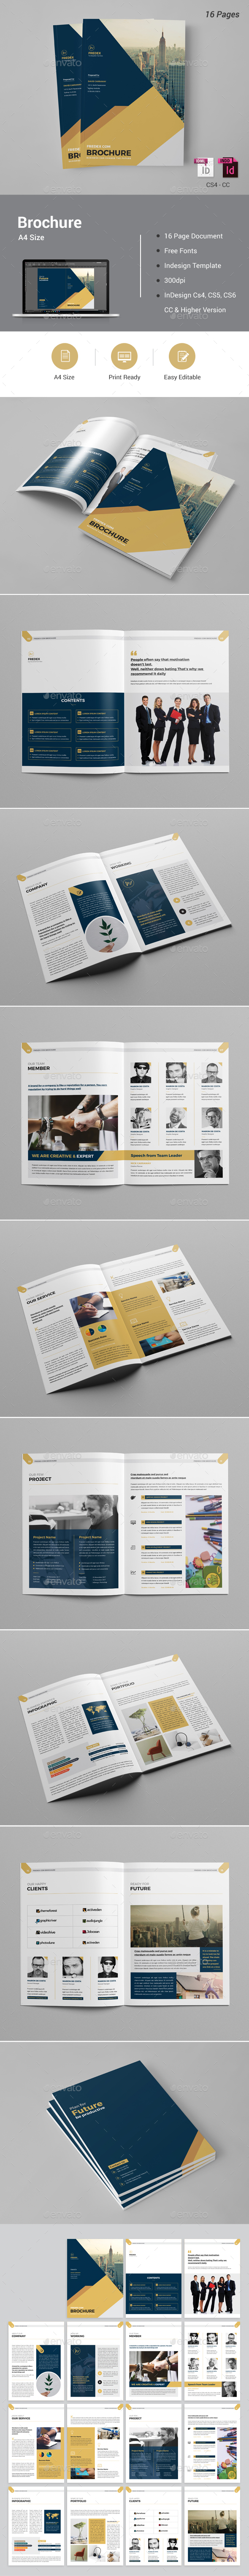 GraphicRiver Brochure 20815024